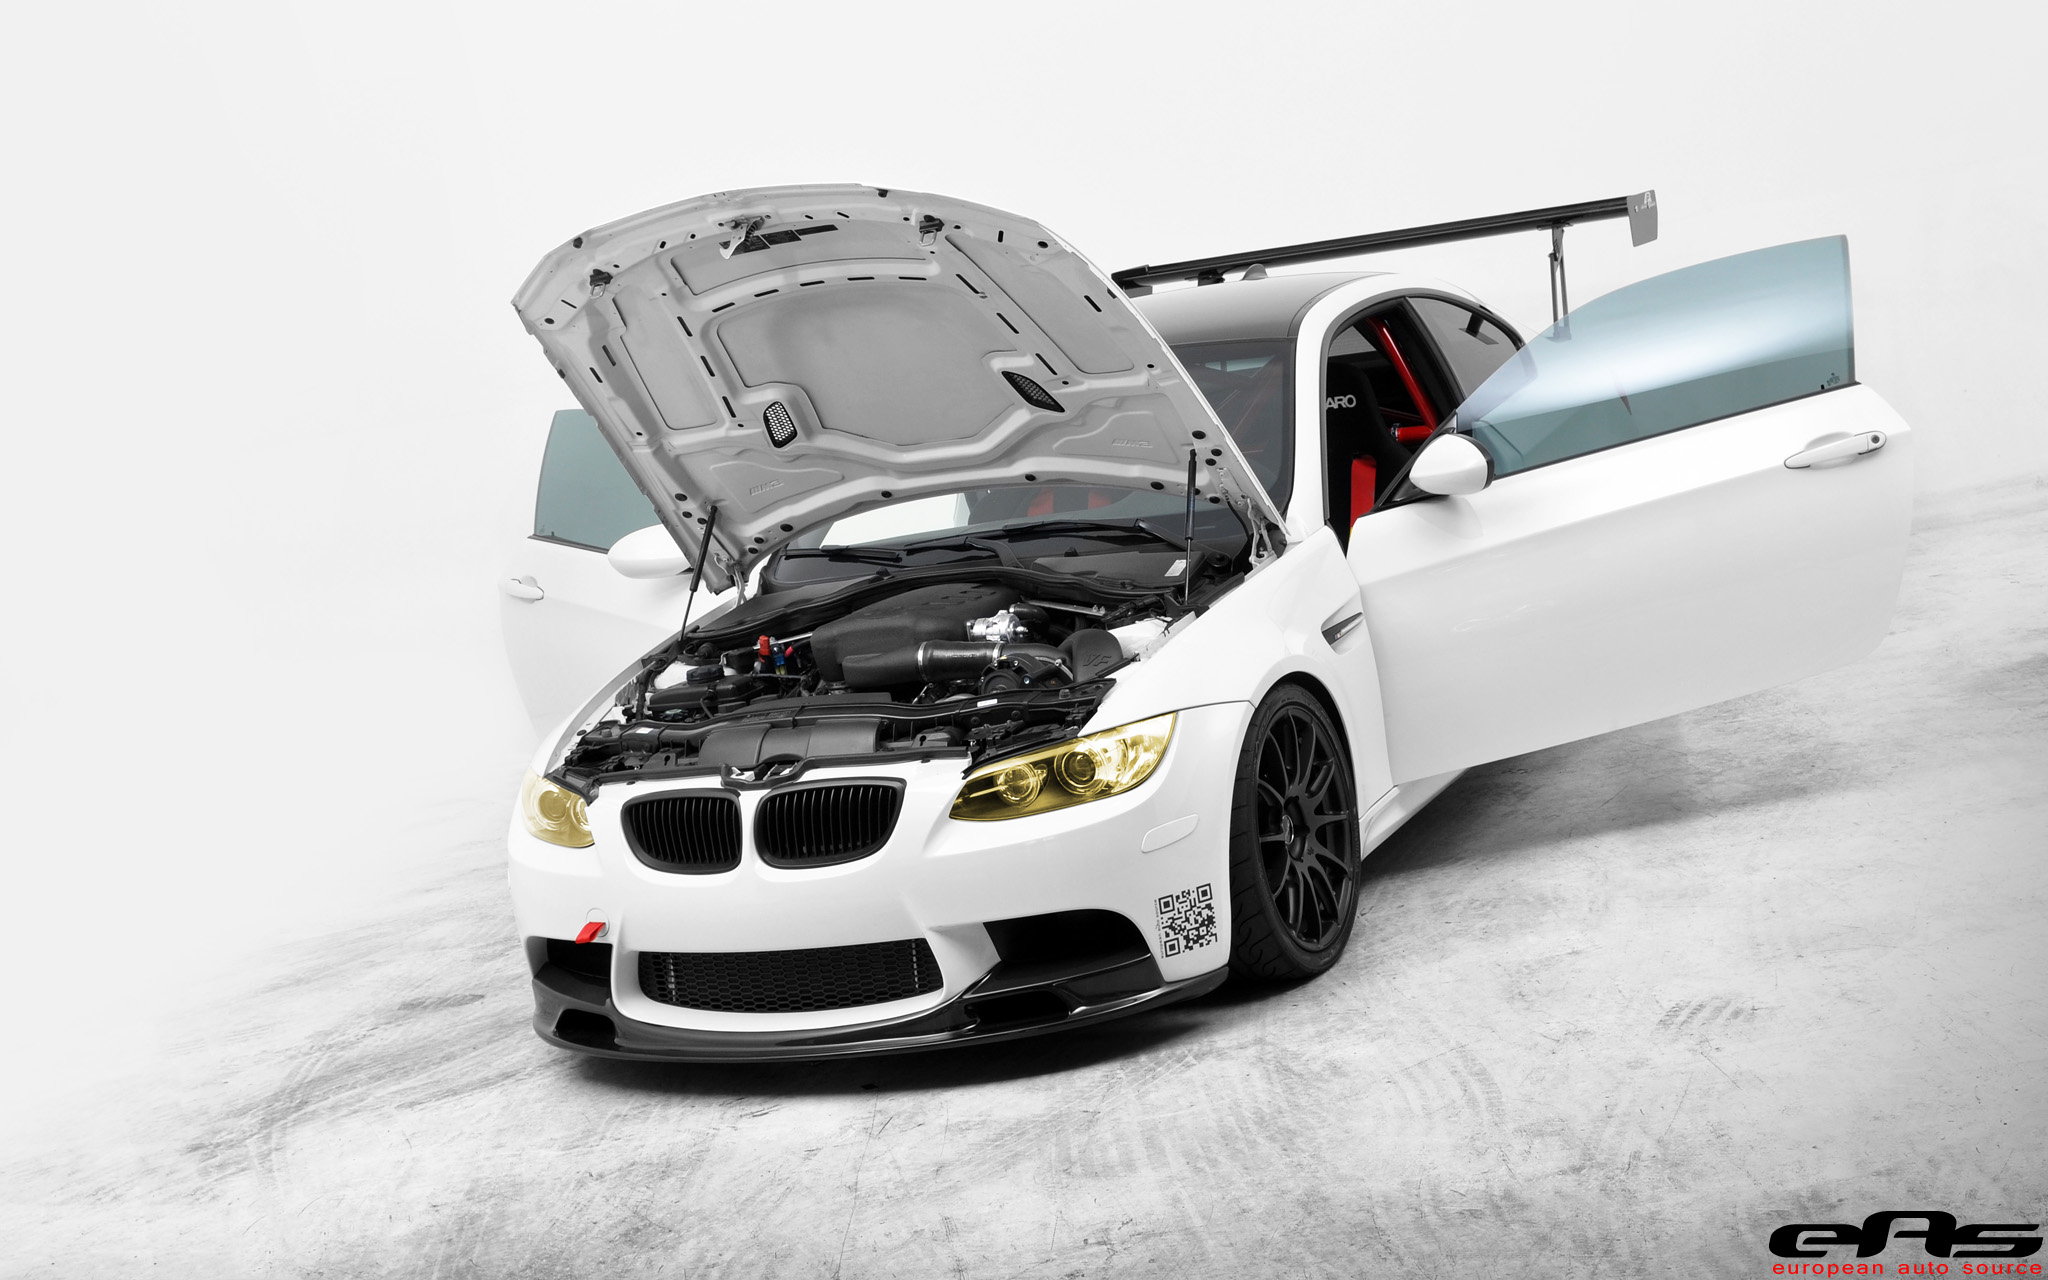 Bmwblog Gets A Ride In The Alpine White Eas Vf620 E92 M3